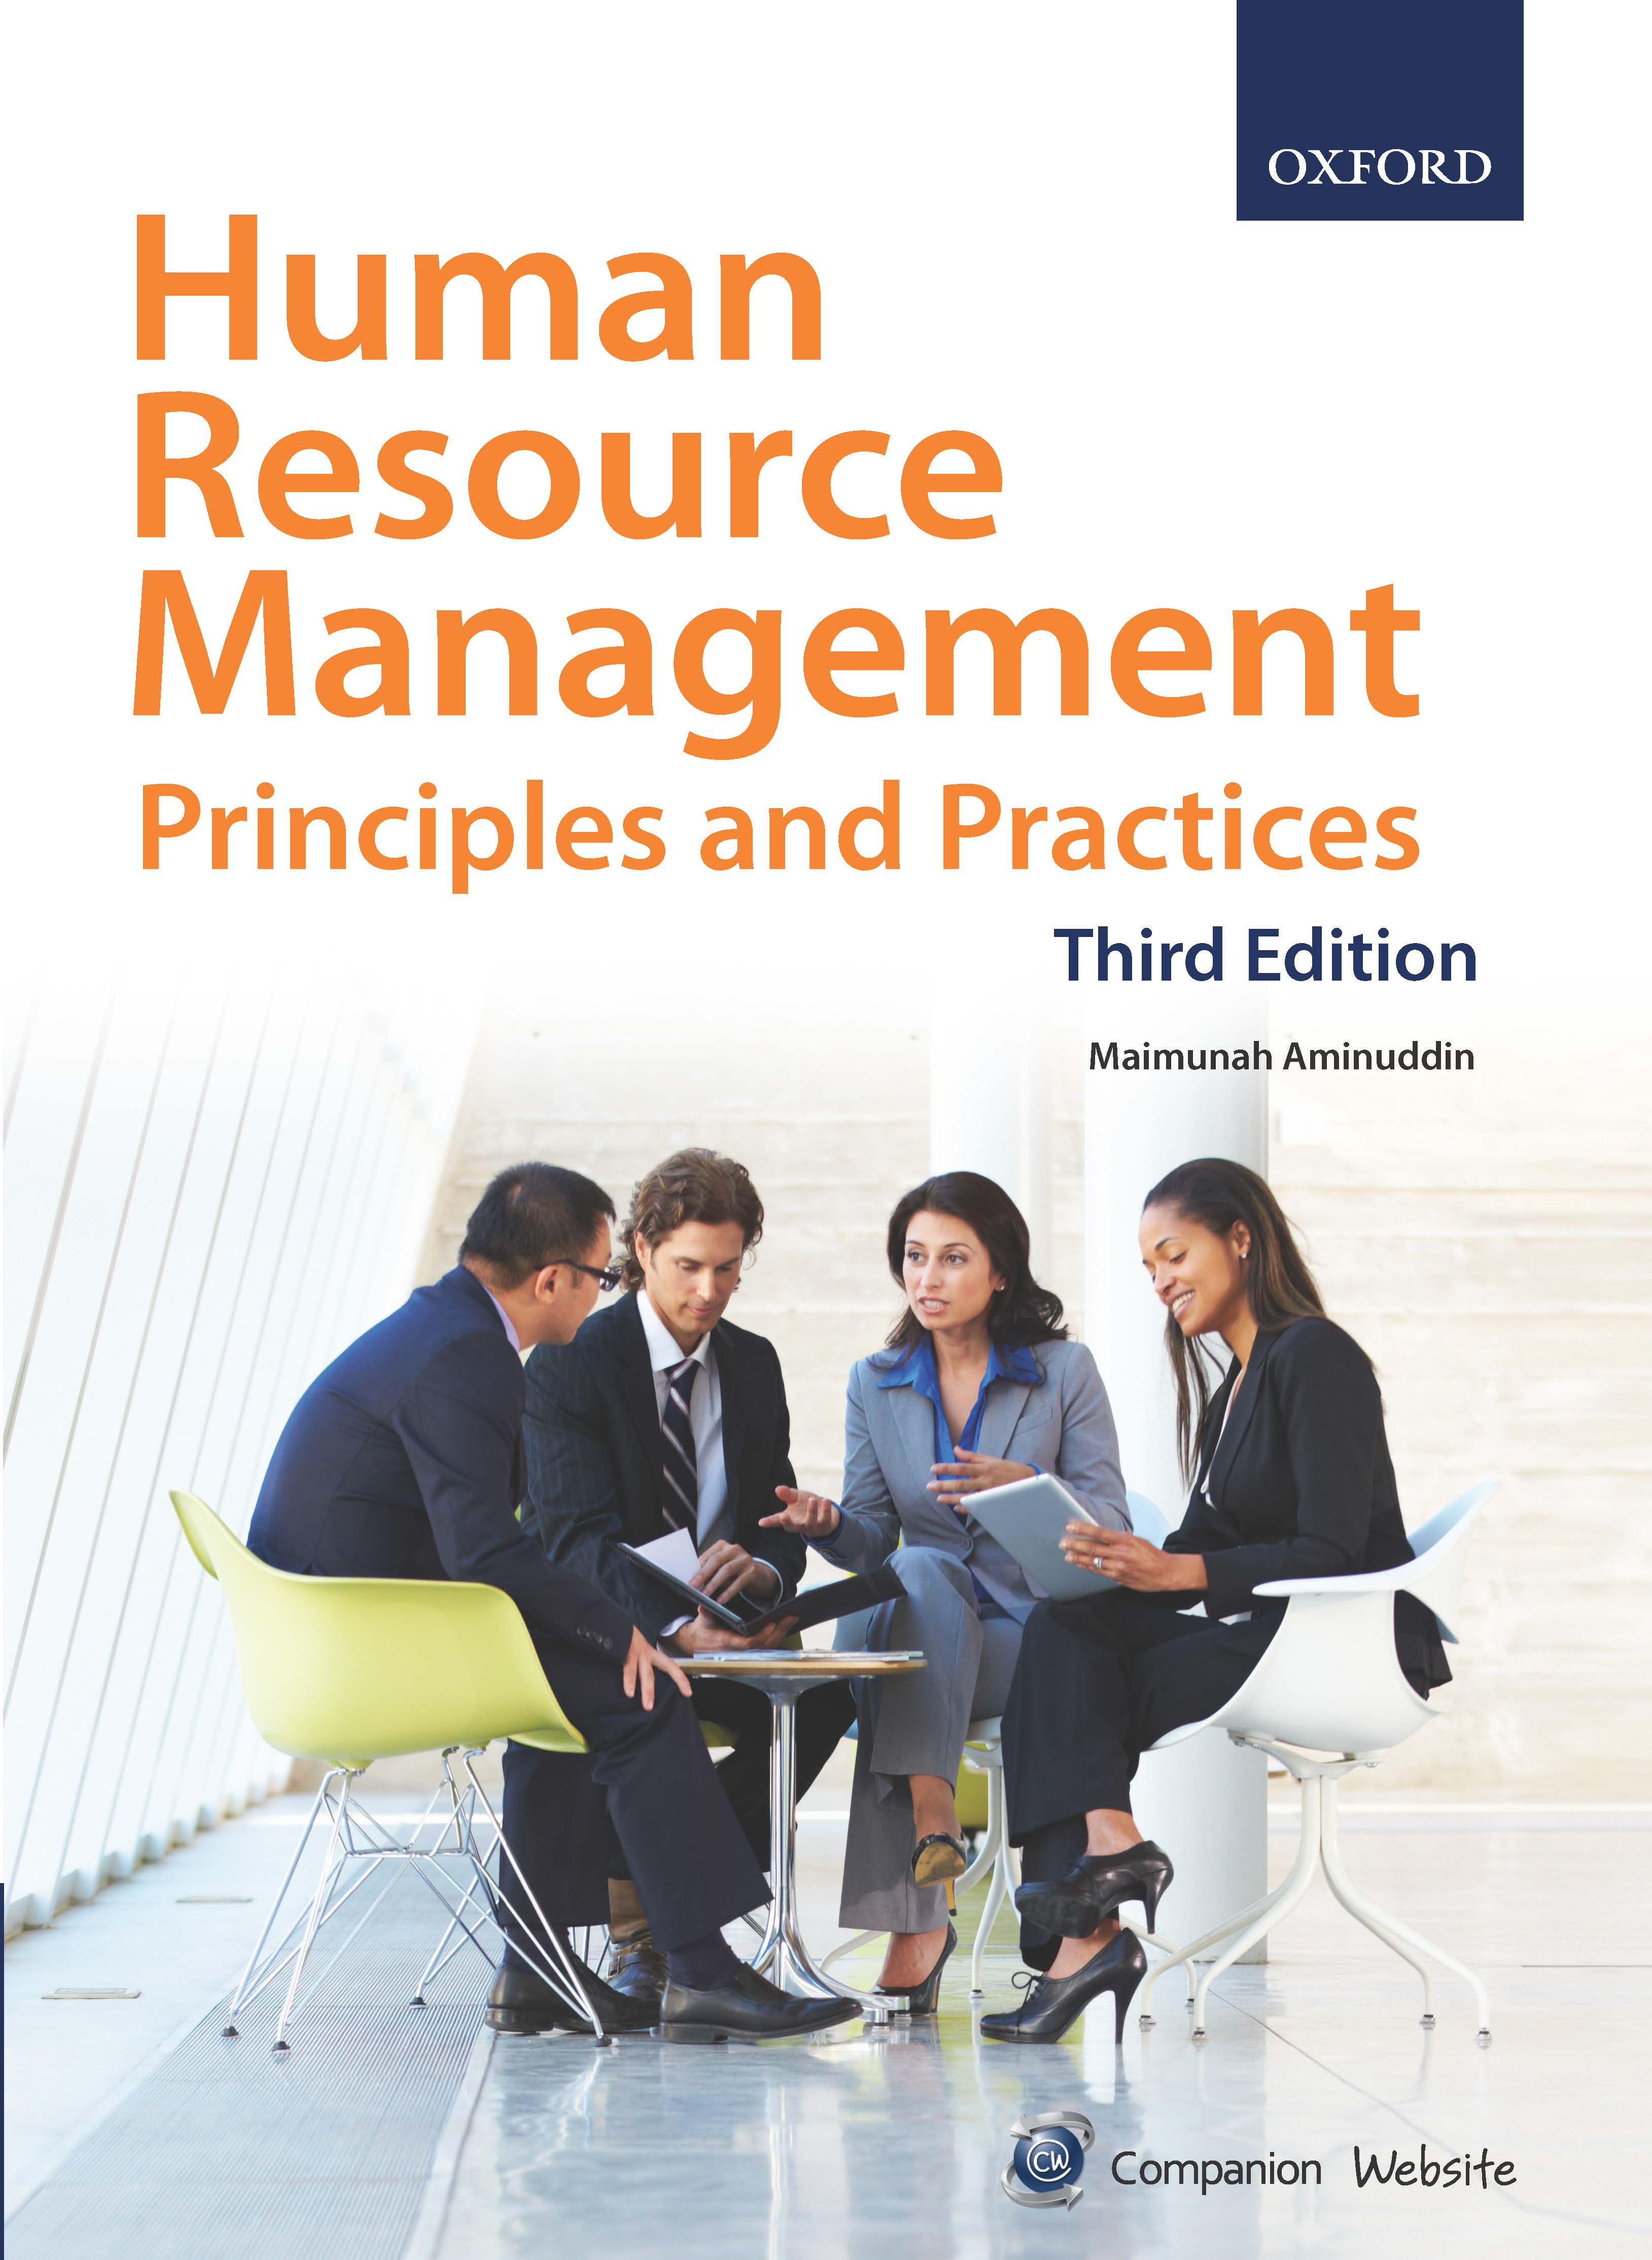 improving your management human resources Human resources management essay sample introduction: morrison's plc is one of the largest food retailers in uk it has changed a lot over the last 8-10 years thanks to hr guidance it has improved all his sections and departments to maintain this growth morrison's has to offer new.